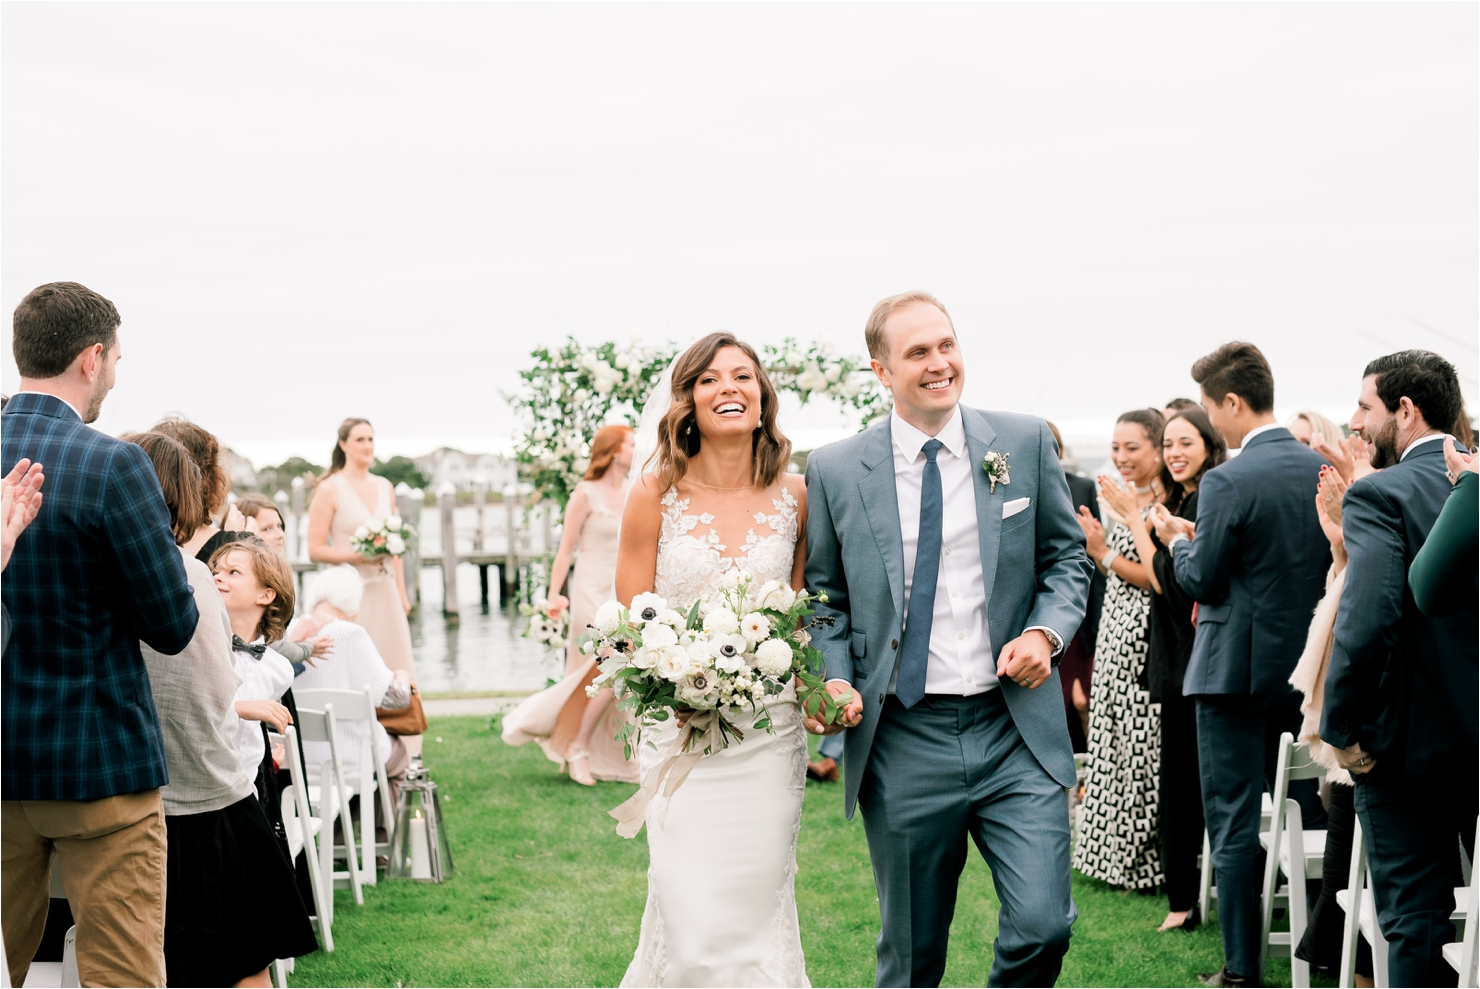 Walking Down Aisle - Just Married at Gurneys Montauk